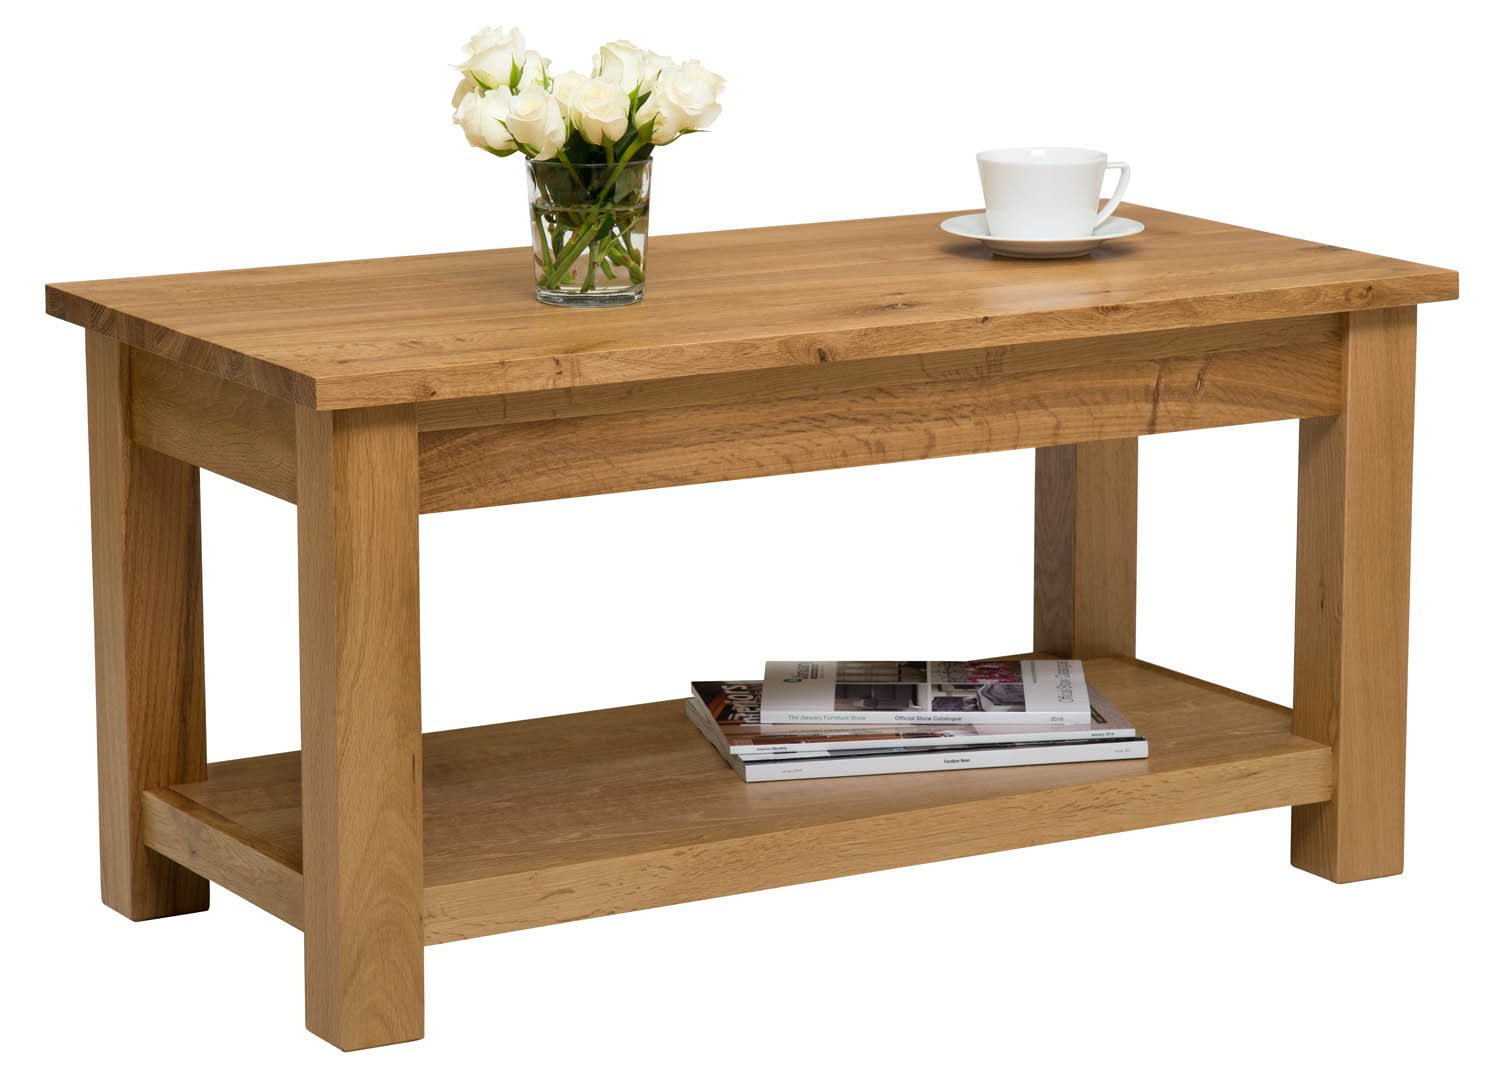 Waverly Solid Oak Large Coffee Table With Shelf Hallowood